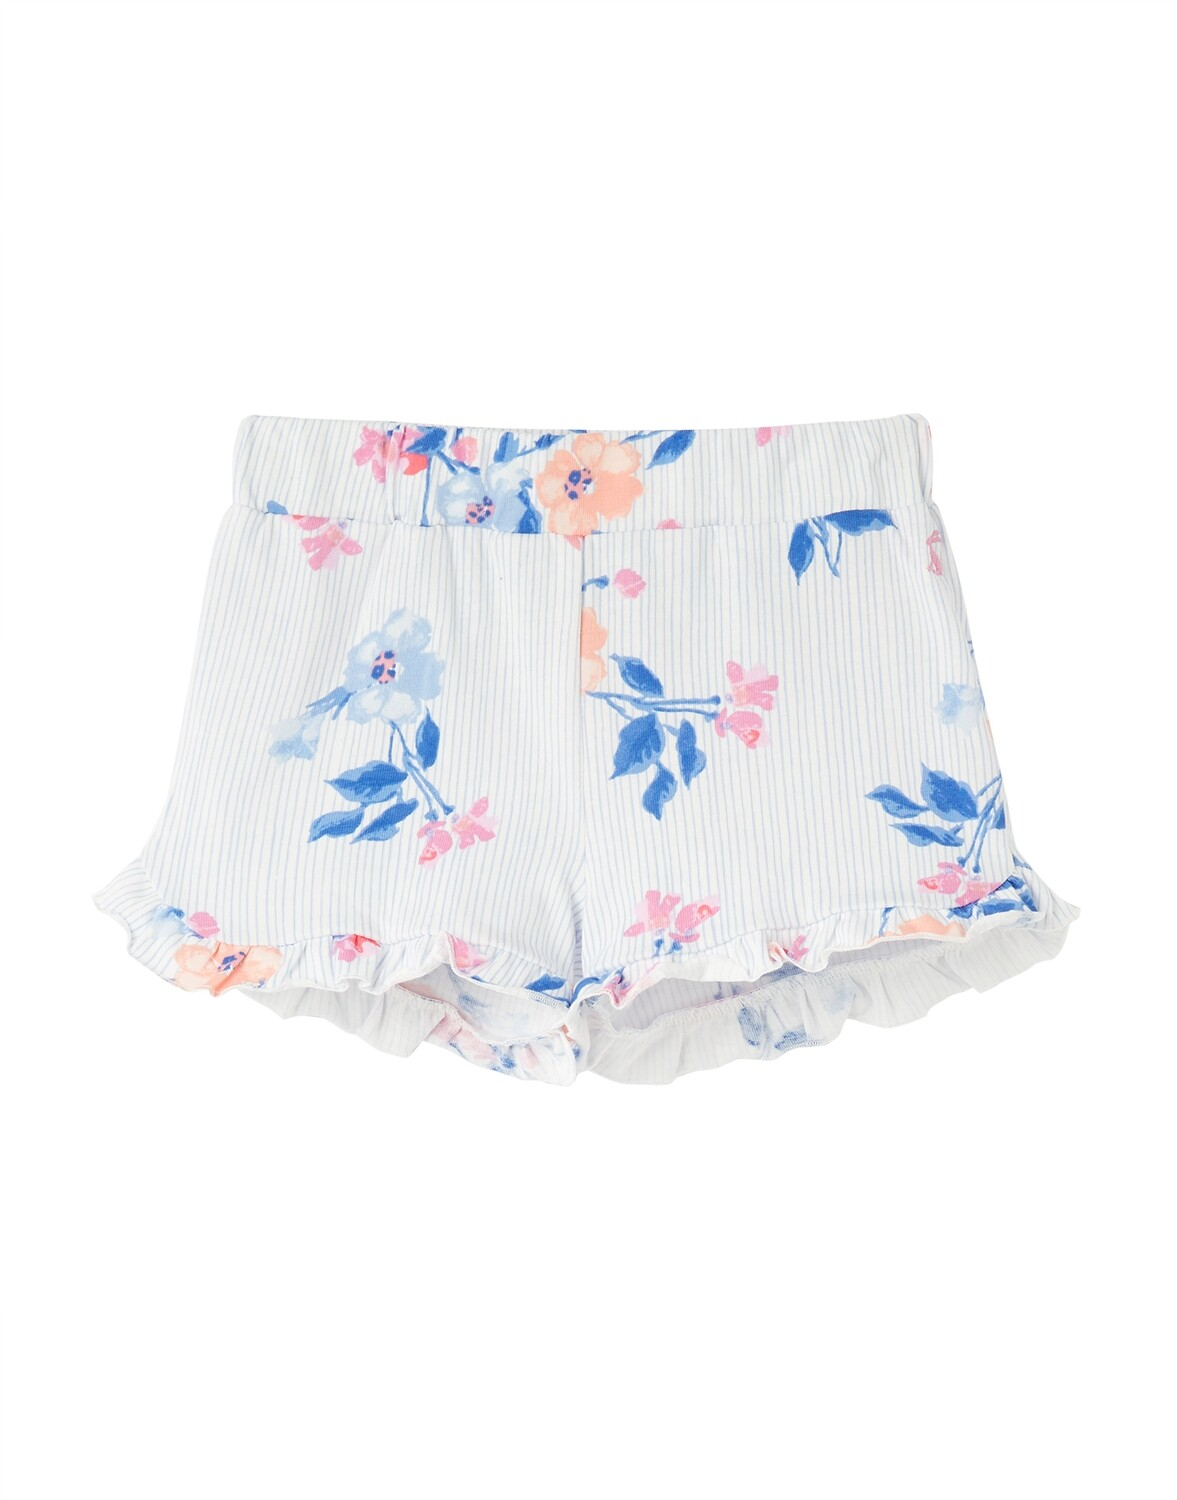 Joules Girls White Floral Shorts 851